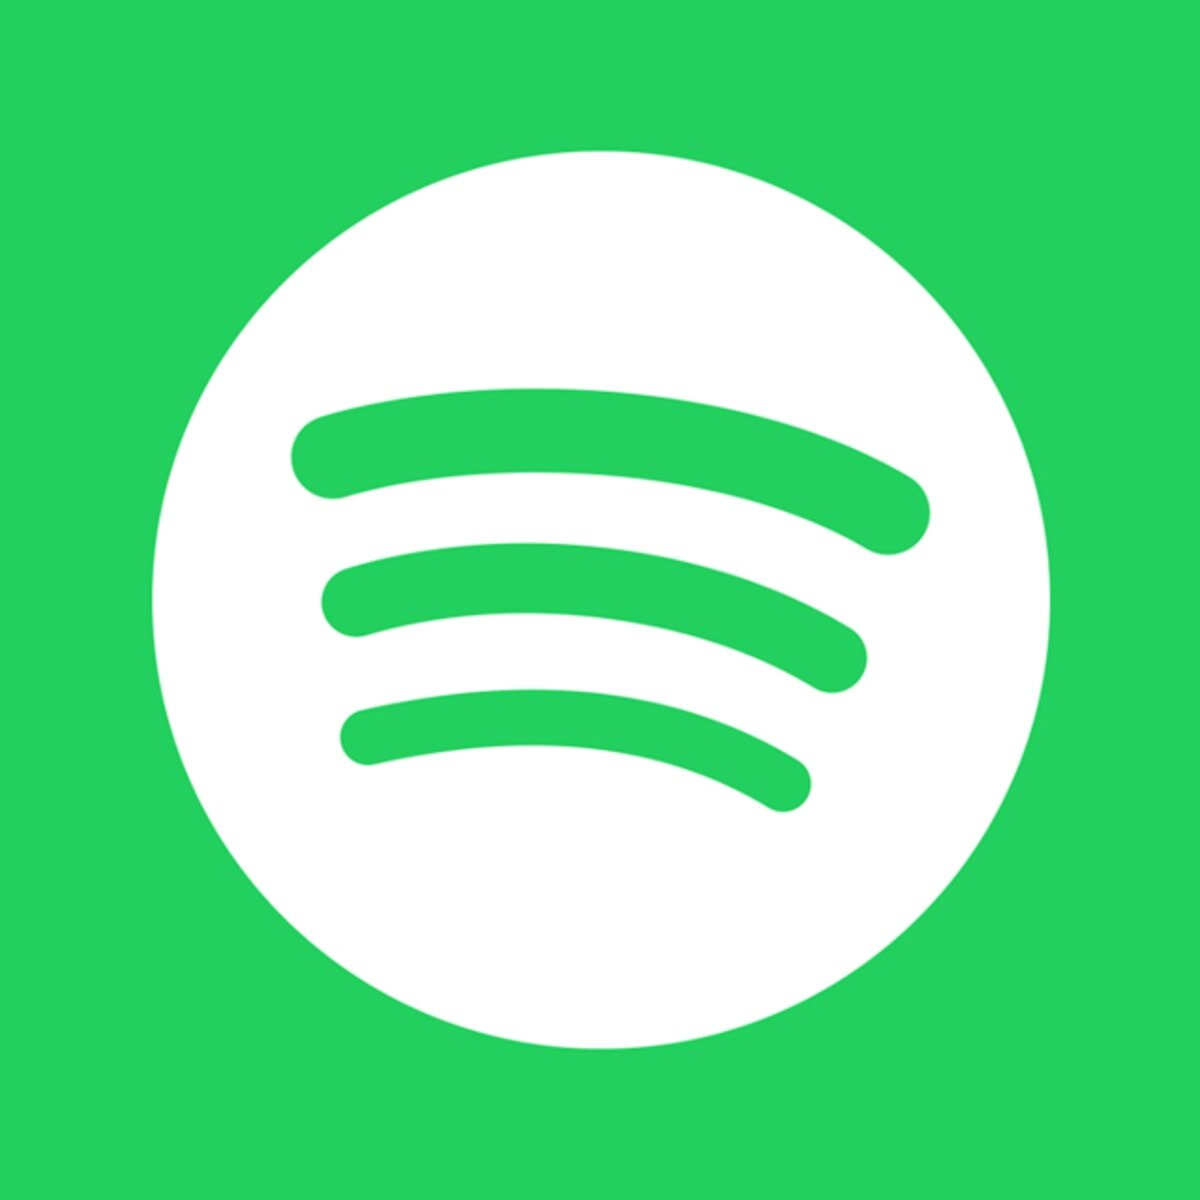 spotify-logo.jpeg